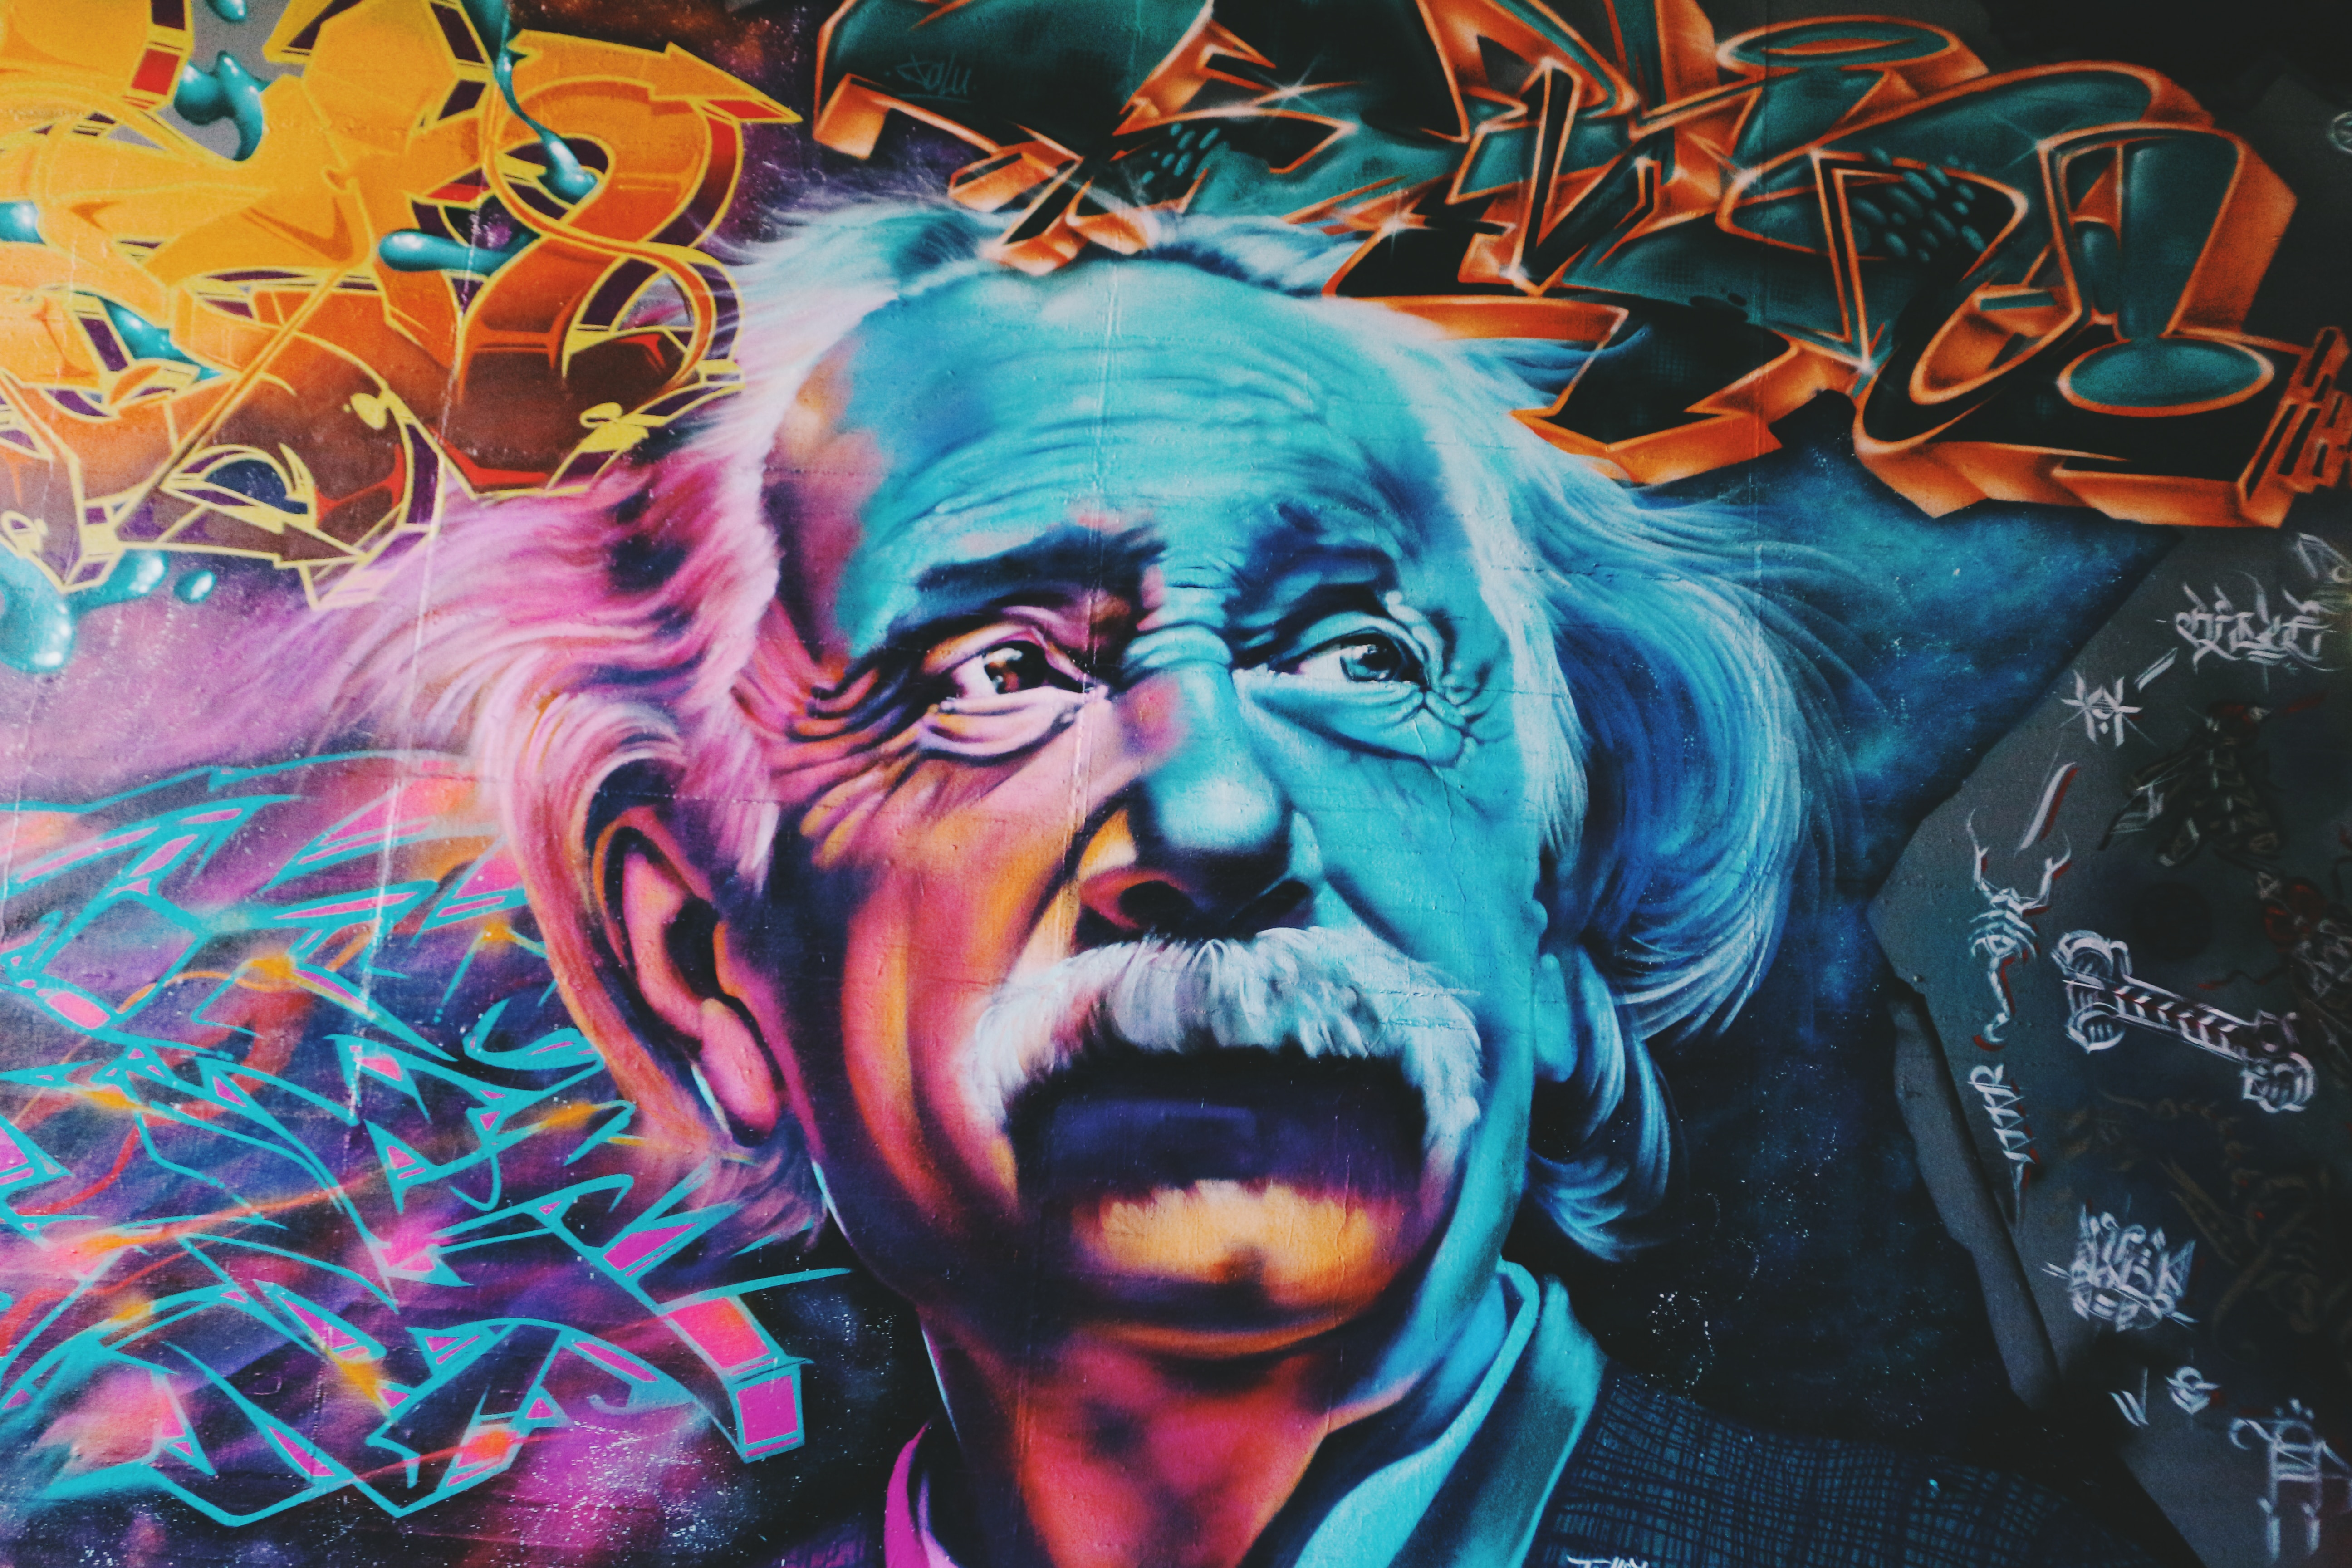 A graffiti image of Einstein. Represents dangerous knowledge to tie in my with my theme